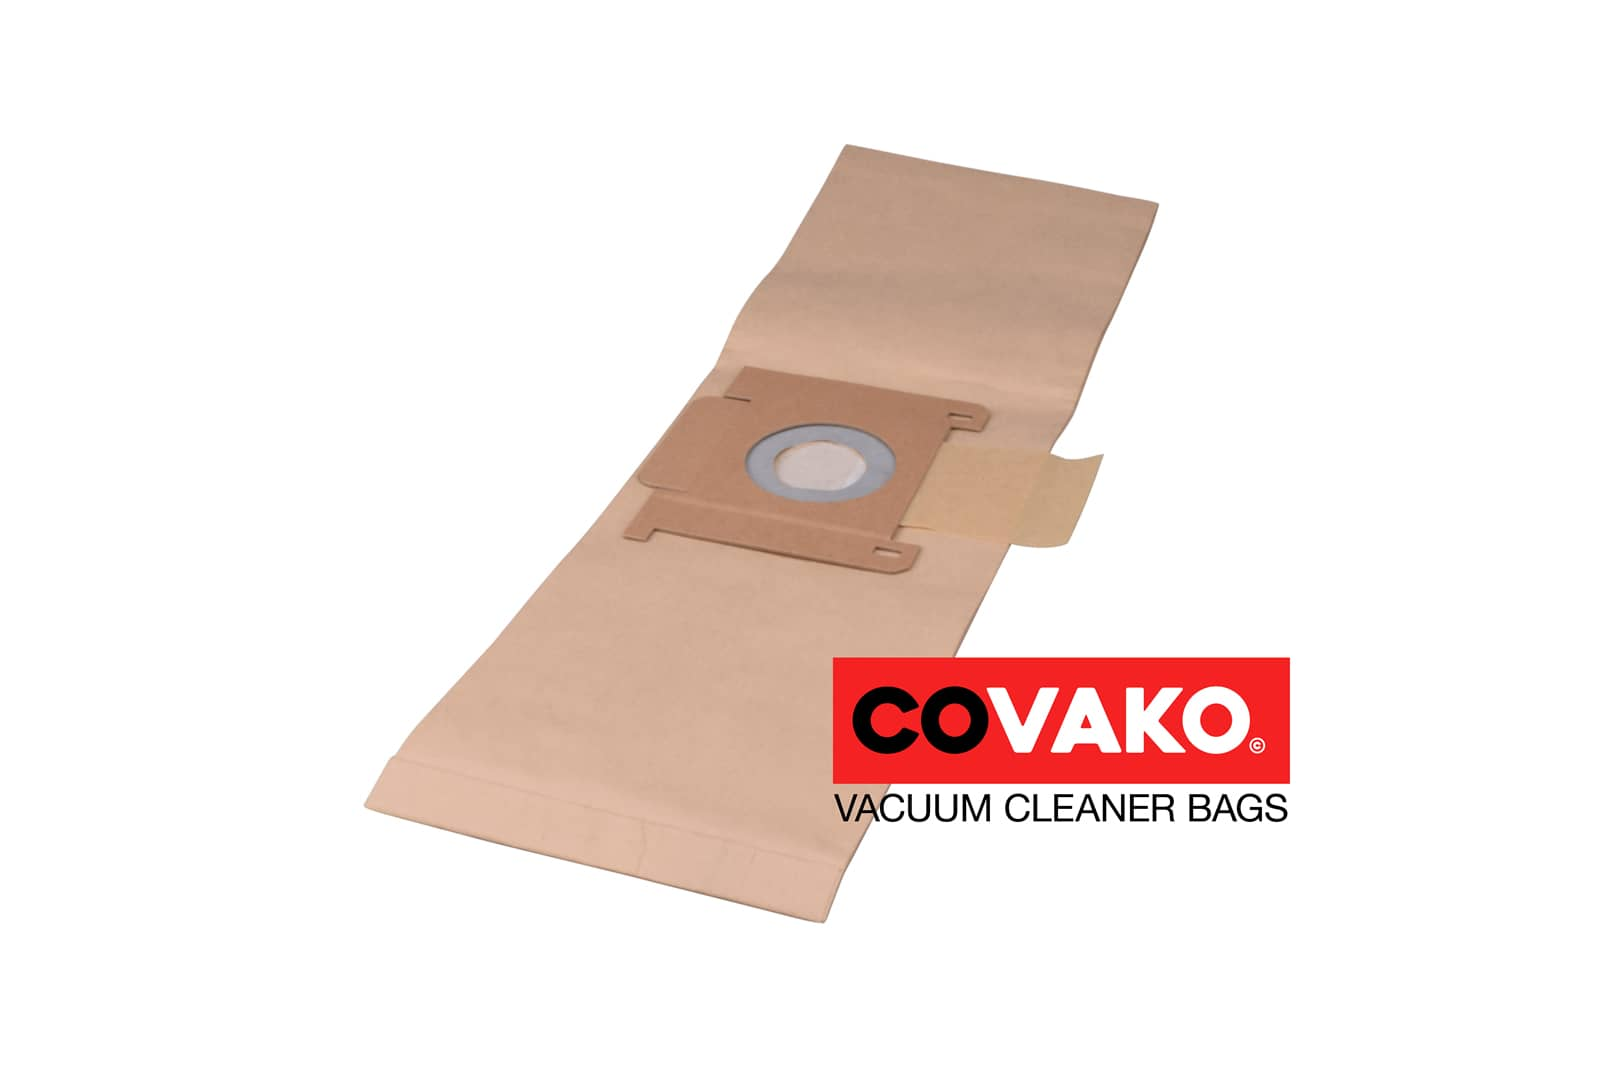 Oehme Otto i-vac C5 / Paper - Oehme Otto vacuum cleaner bags